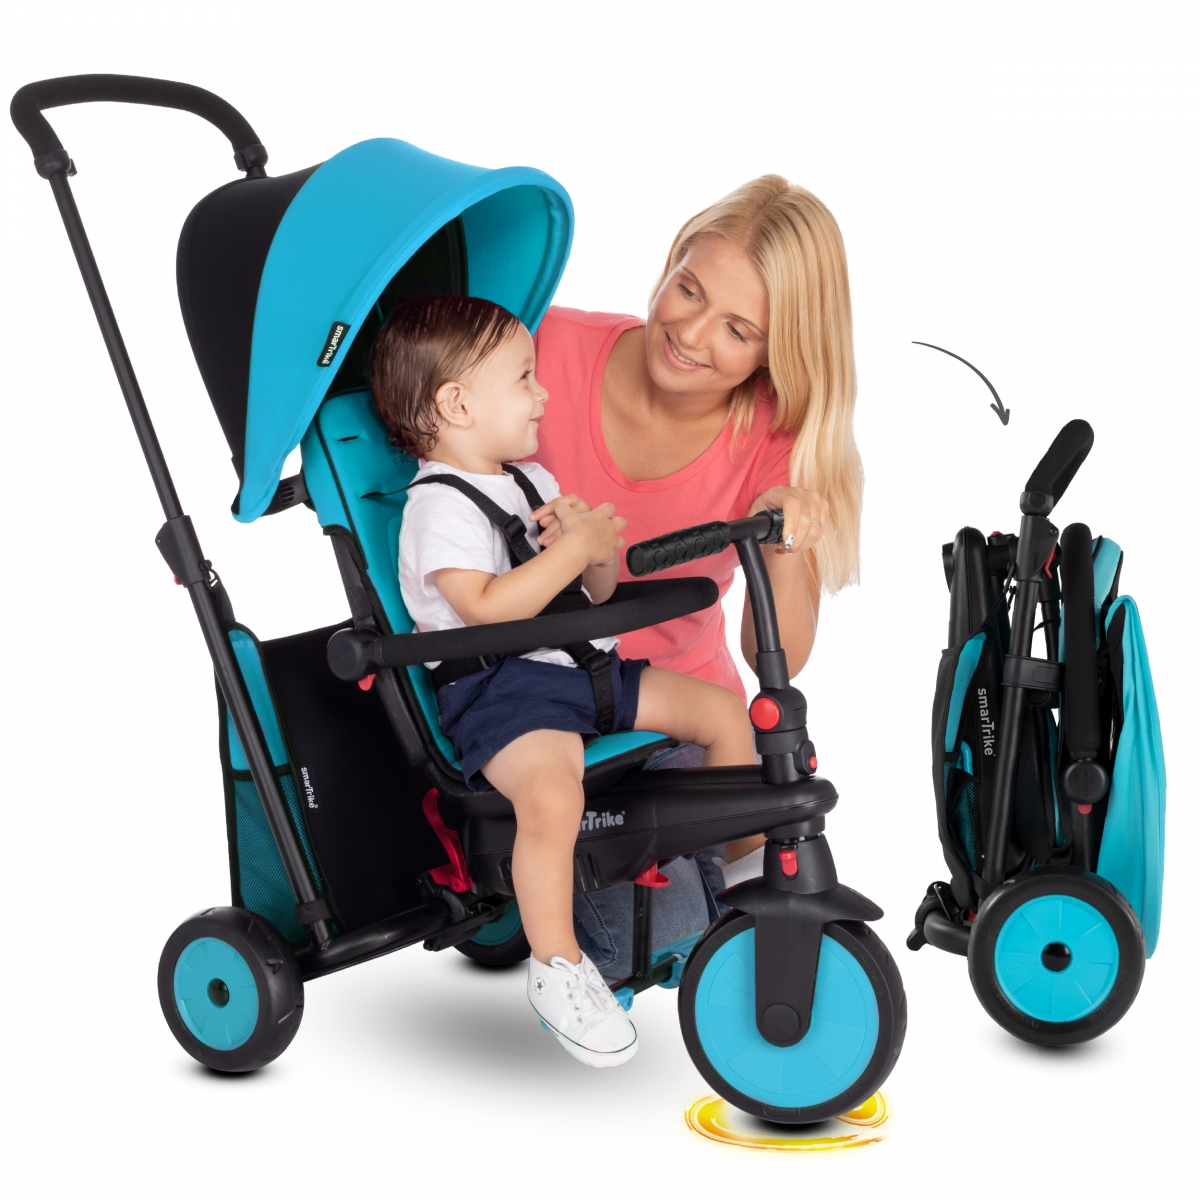 Picture of SmarTrike 6in1 Folding Baby Tricycle STR3-Blue (NEW)